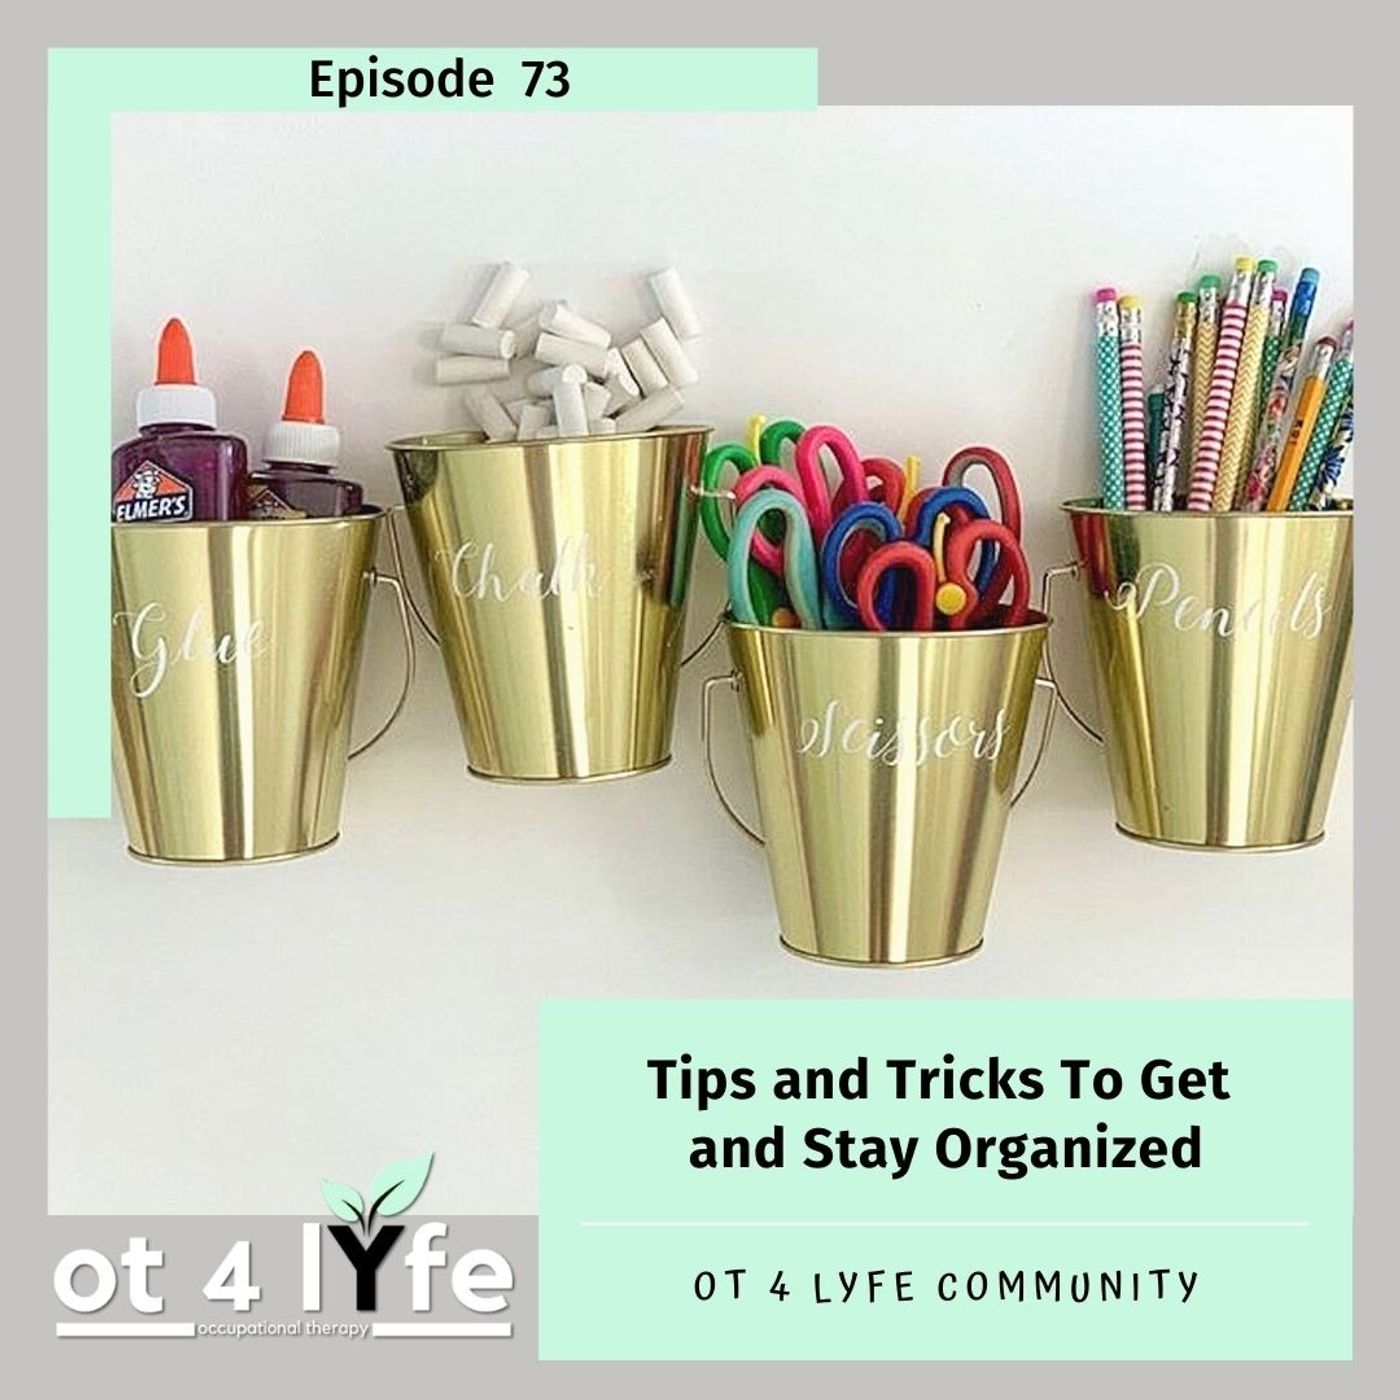 Tips and Tricks To Get and Stay Organized